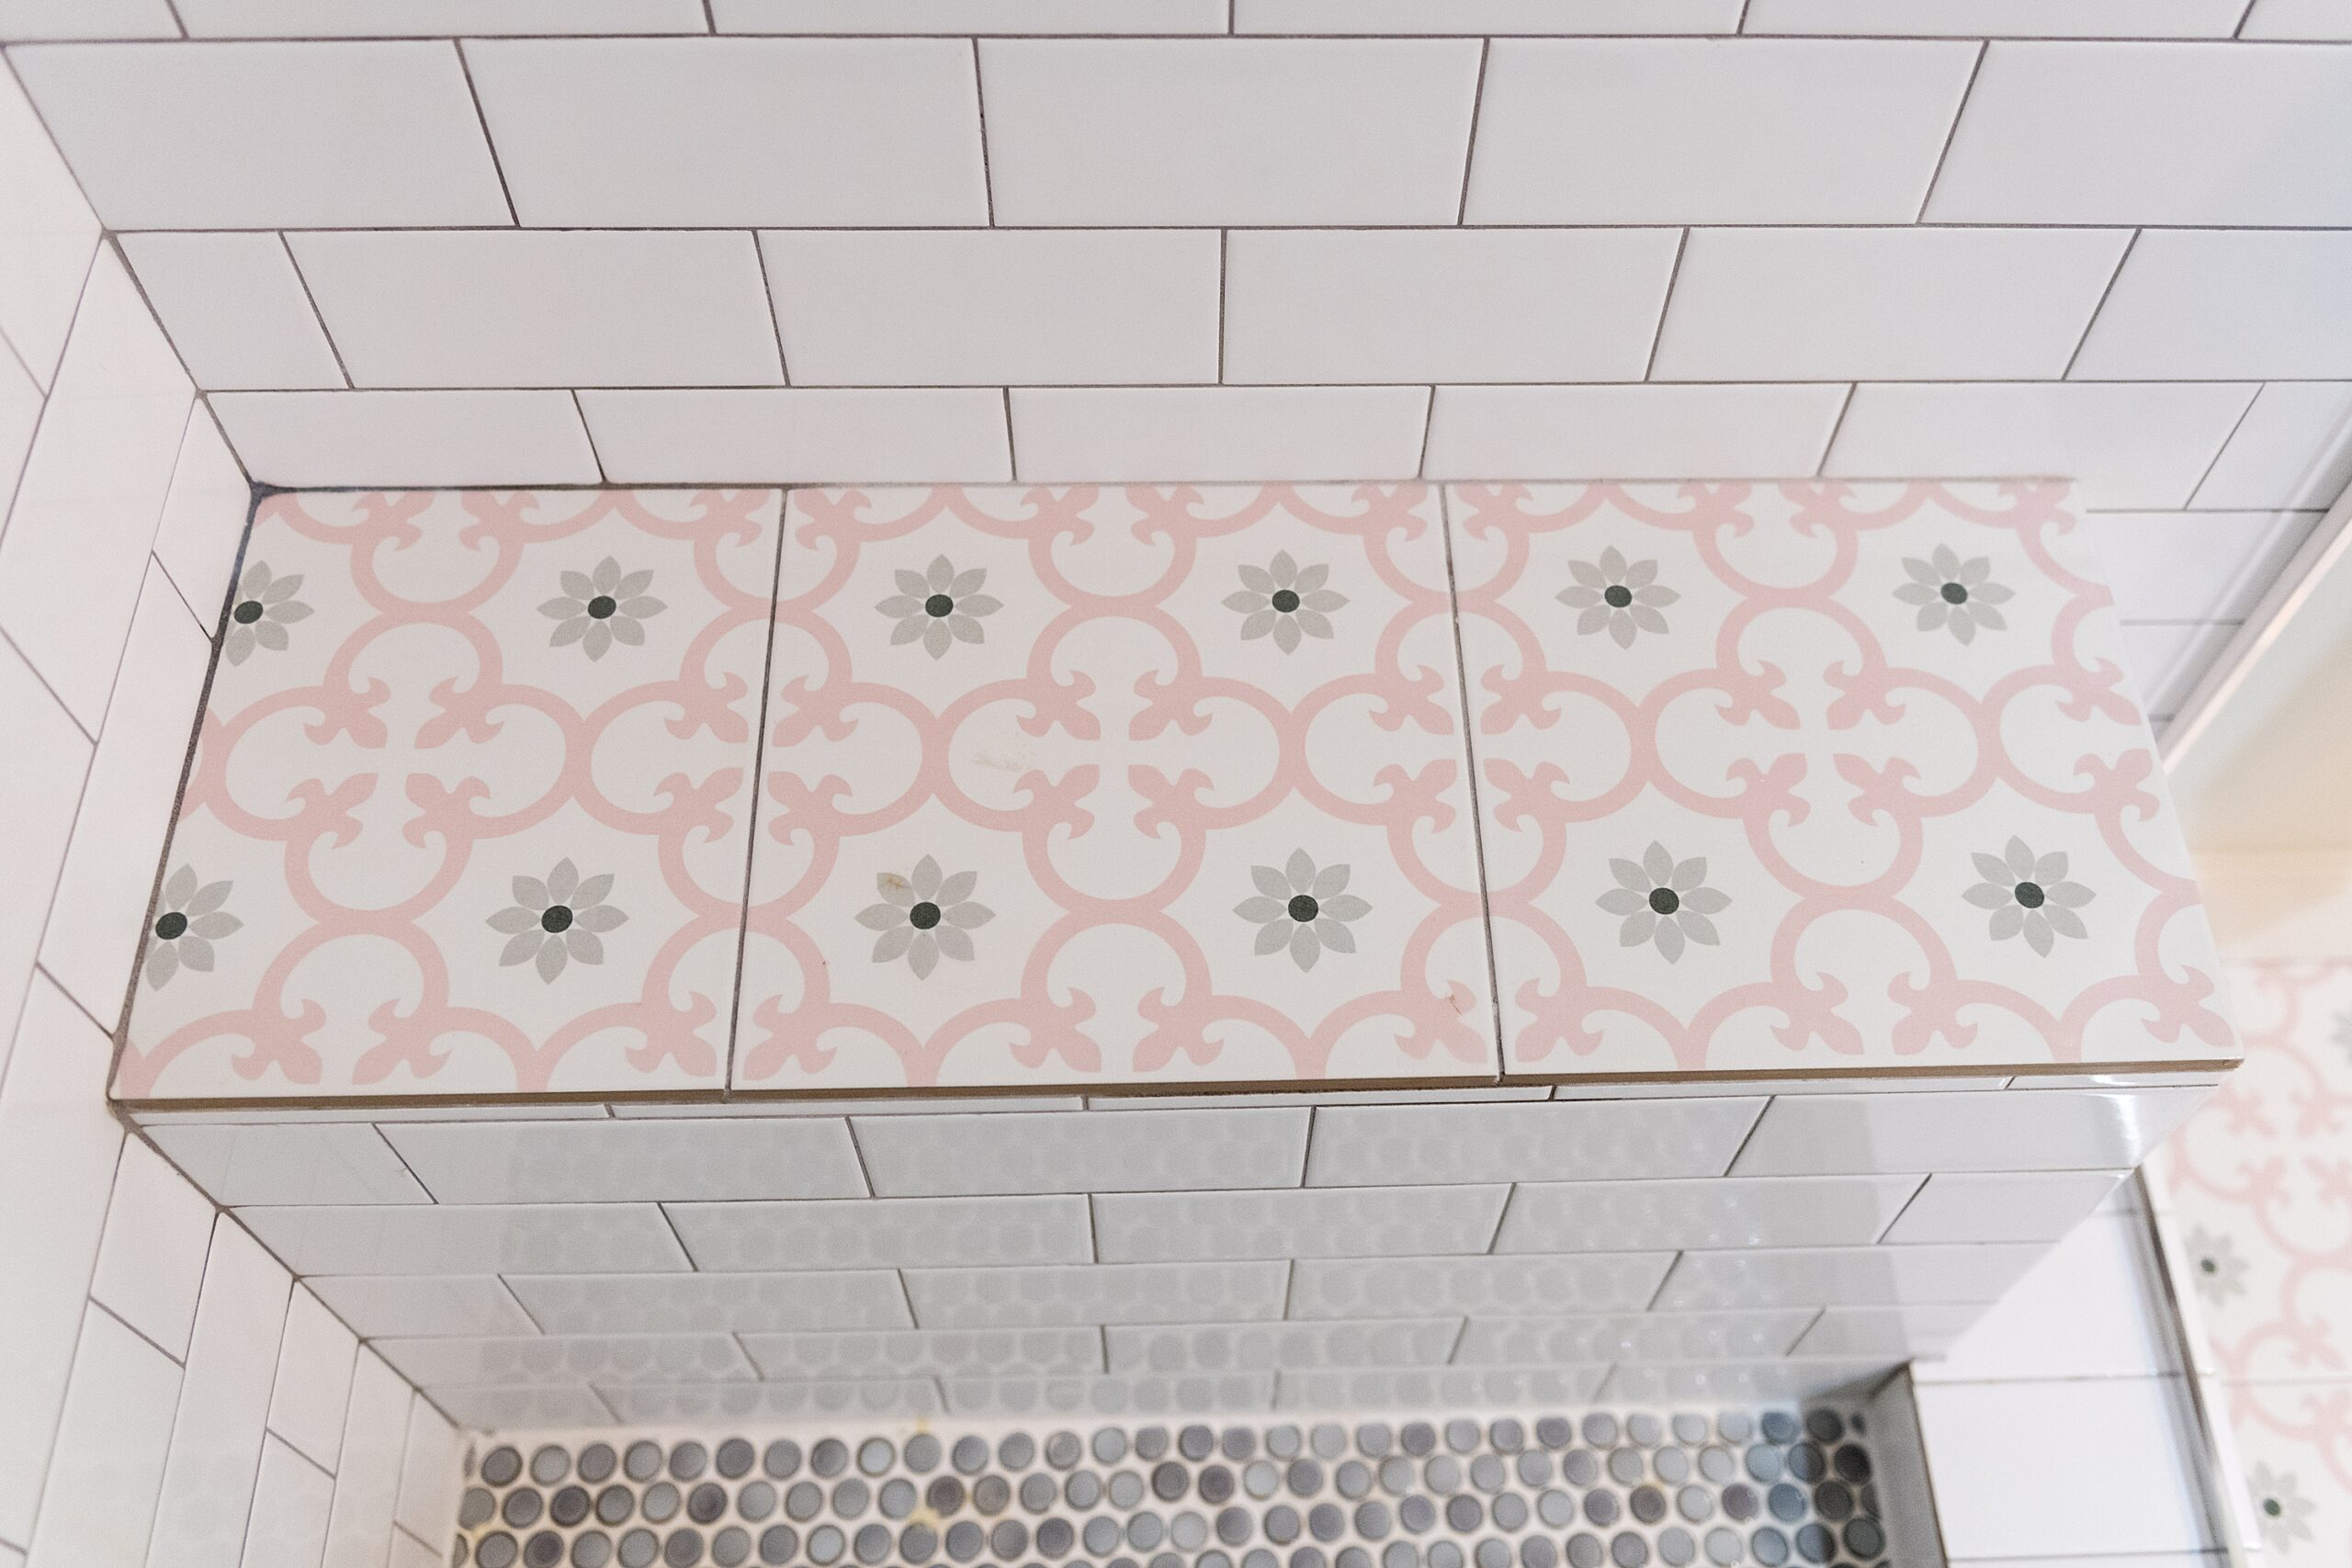 Girls Bathroom by popular Houston life and style blog, Fancy Ashley: image of a bathroom with a walk in shower that has white subway tile, pink and grey tiles, and grey penny tiles.